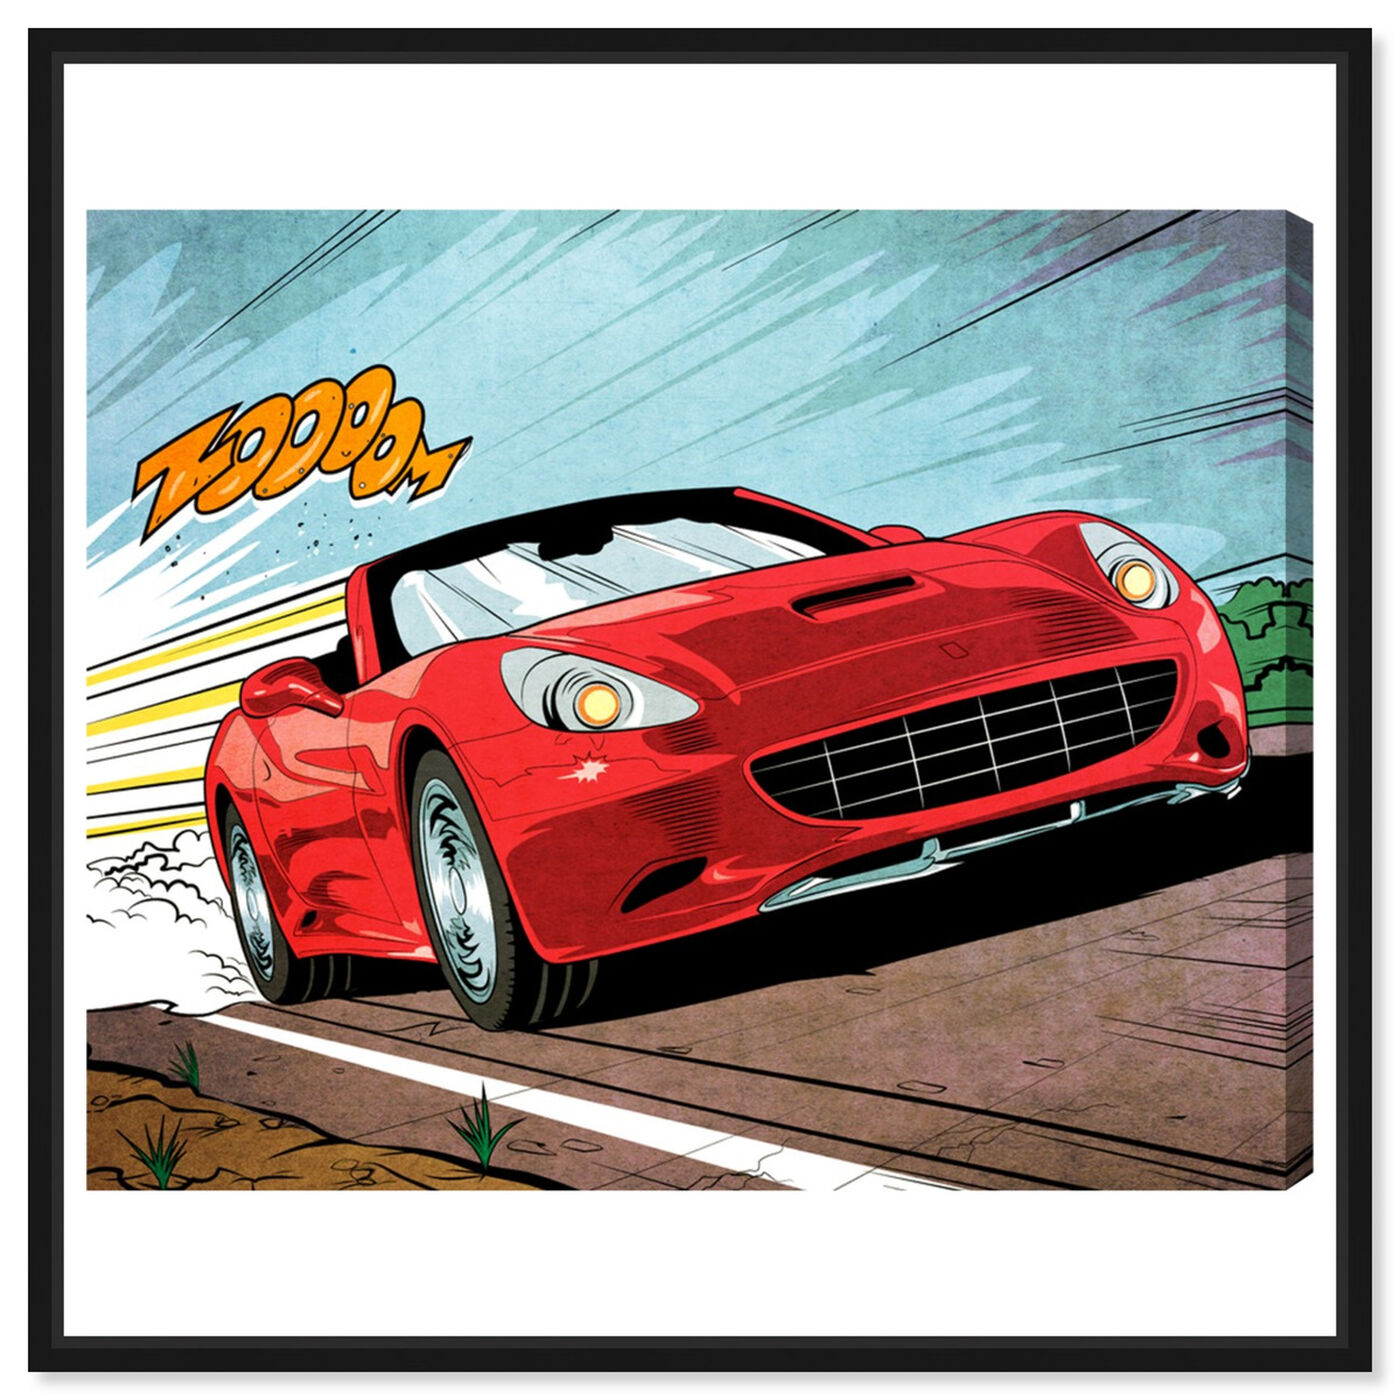 Front view of Vroom featuring advertising and comics art.